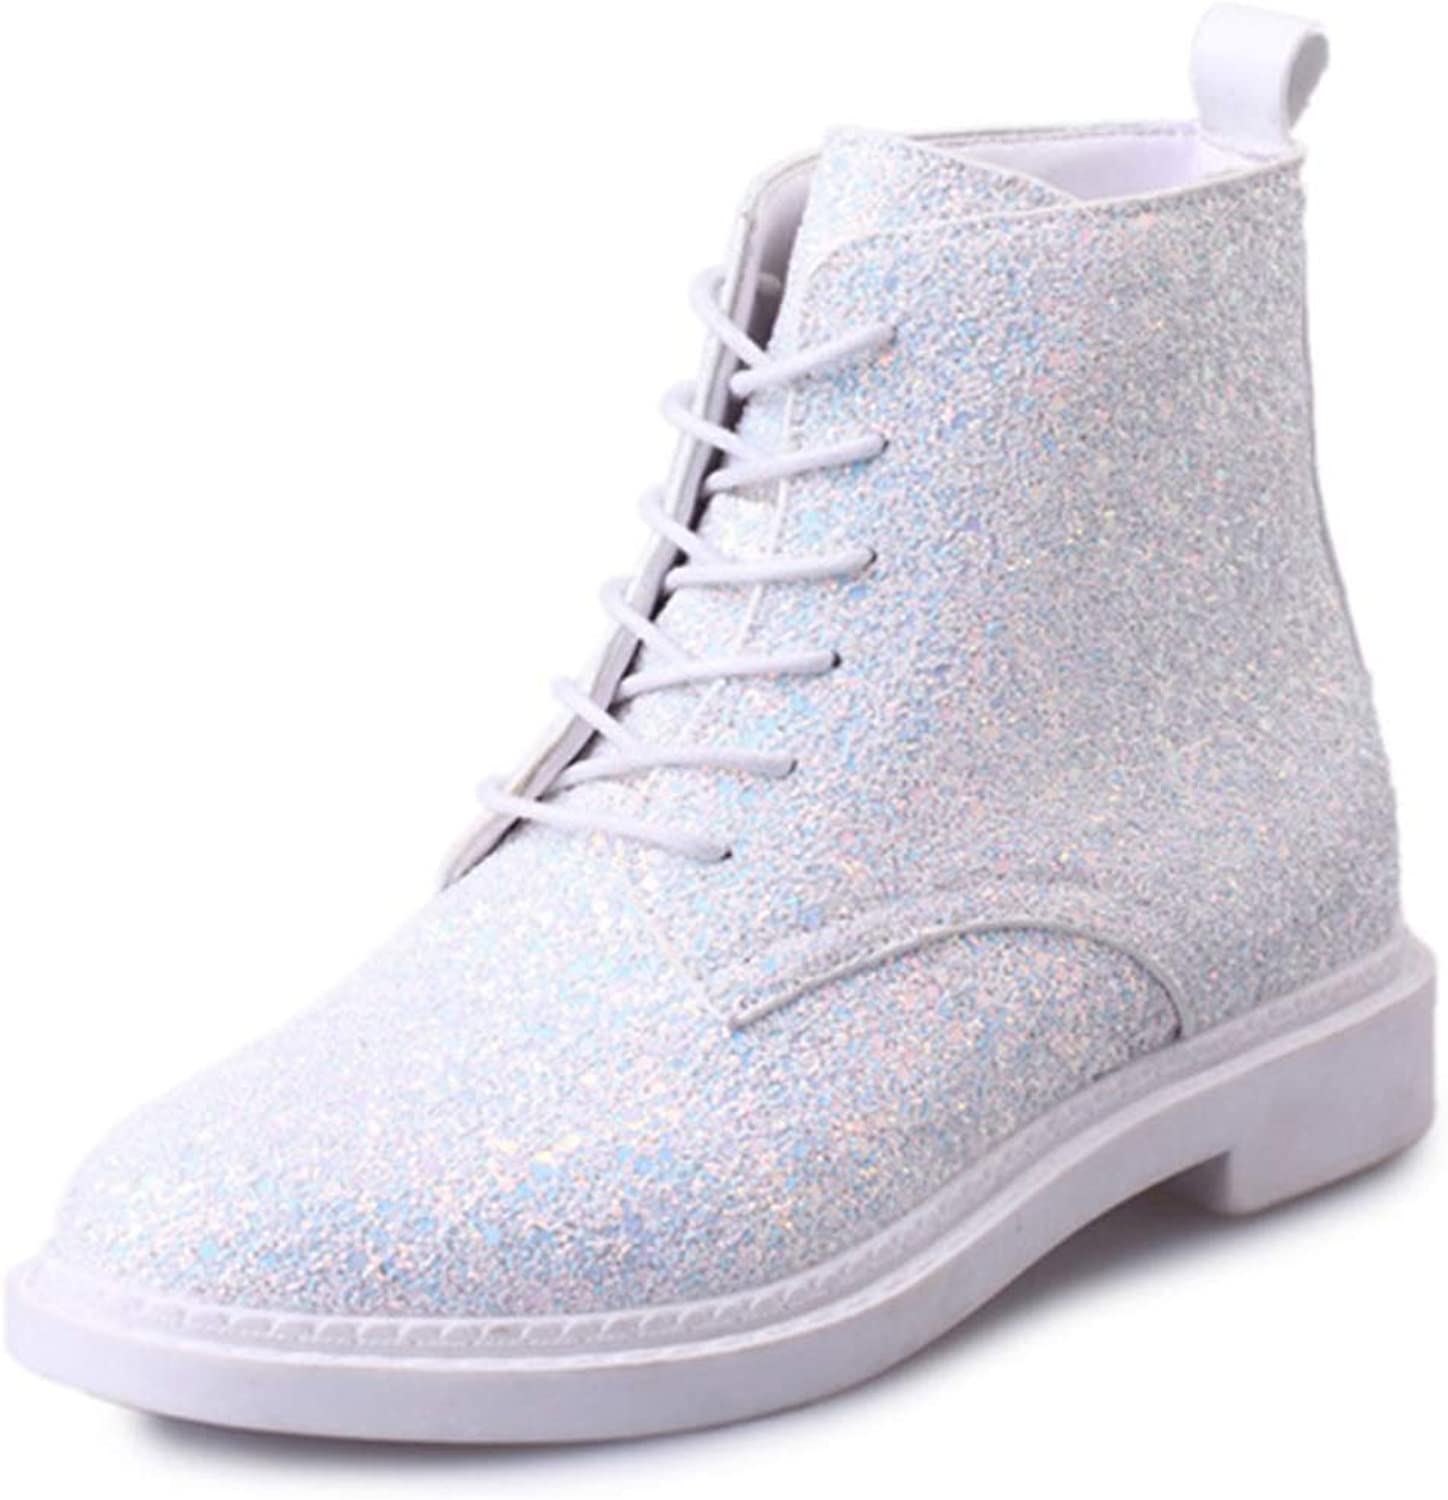 Women Martin boots artificial leather round head high-top lace-up boots flat with sequins European and American fashion new casual shoes,White,37EU